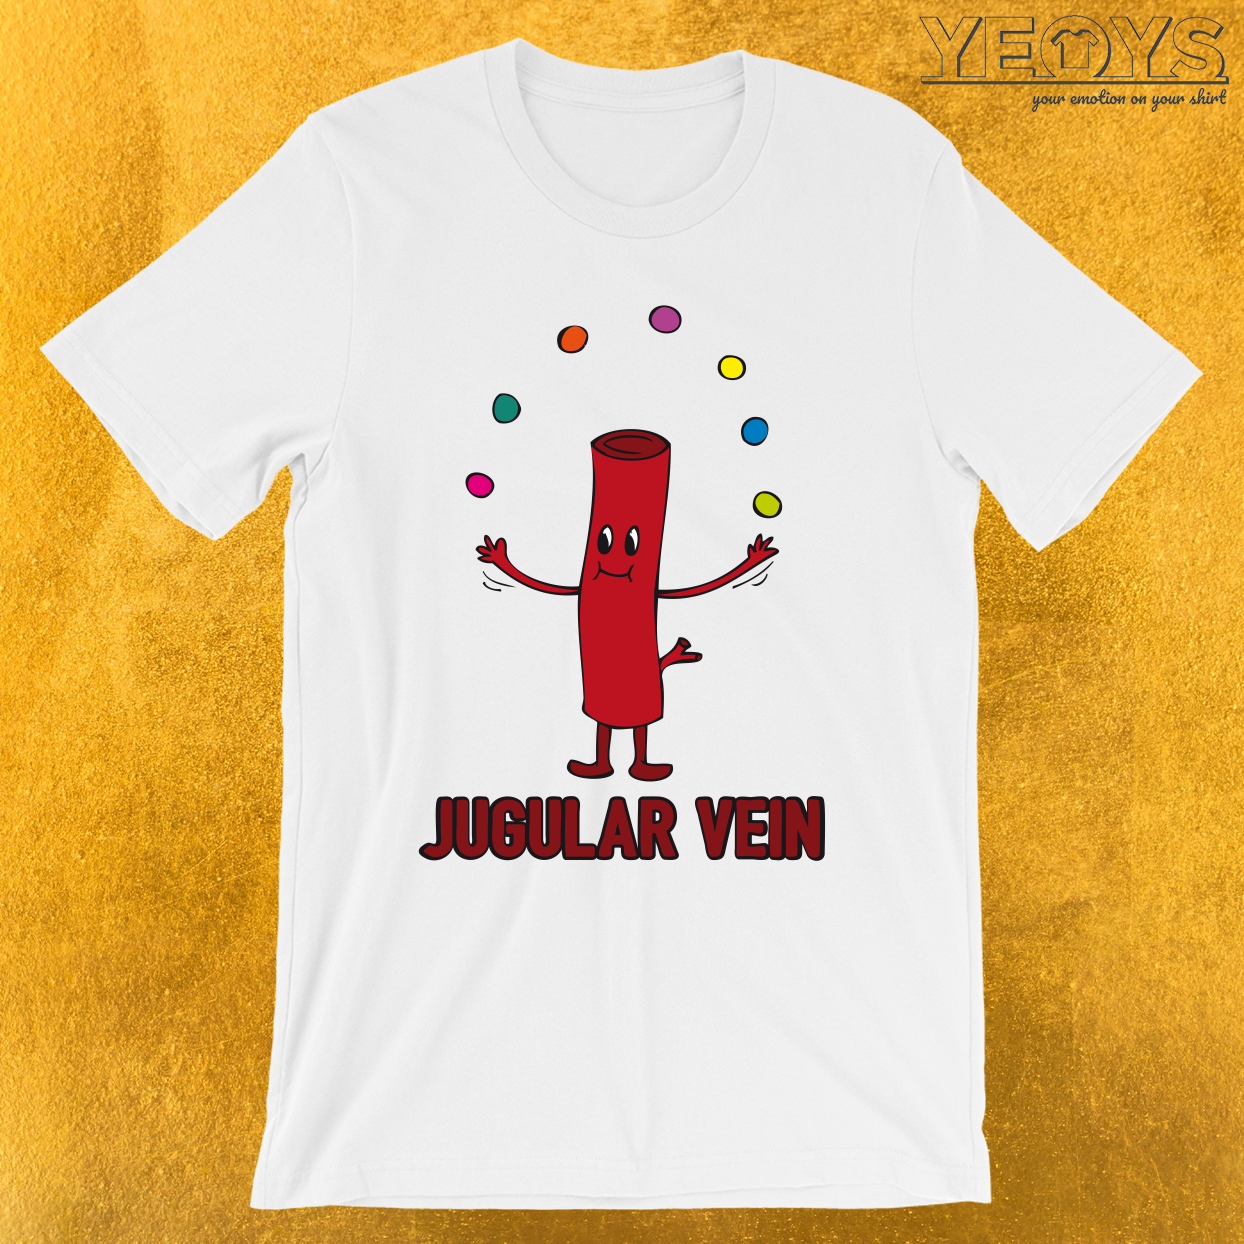 Jugular Vein T-Shirt